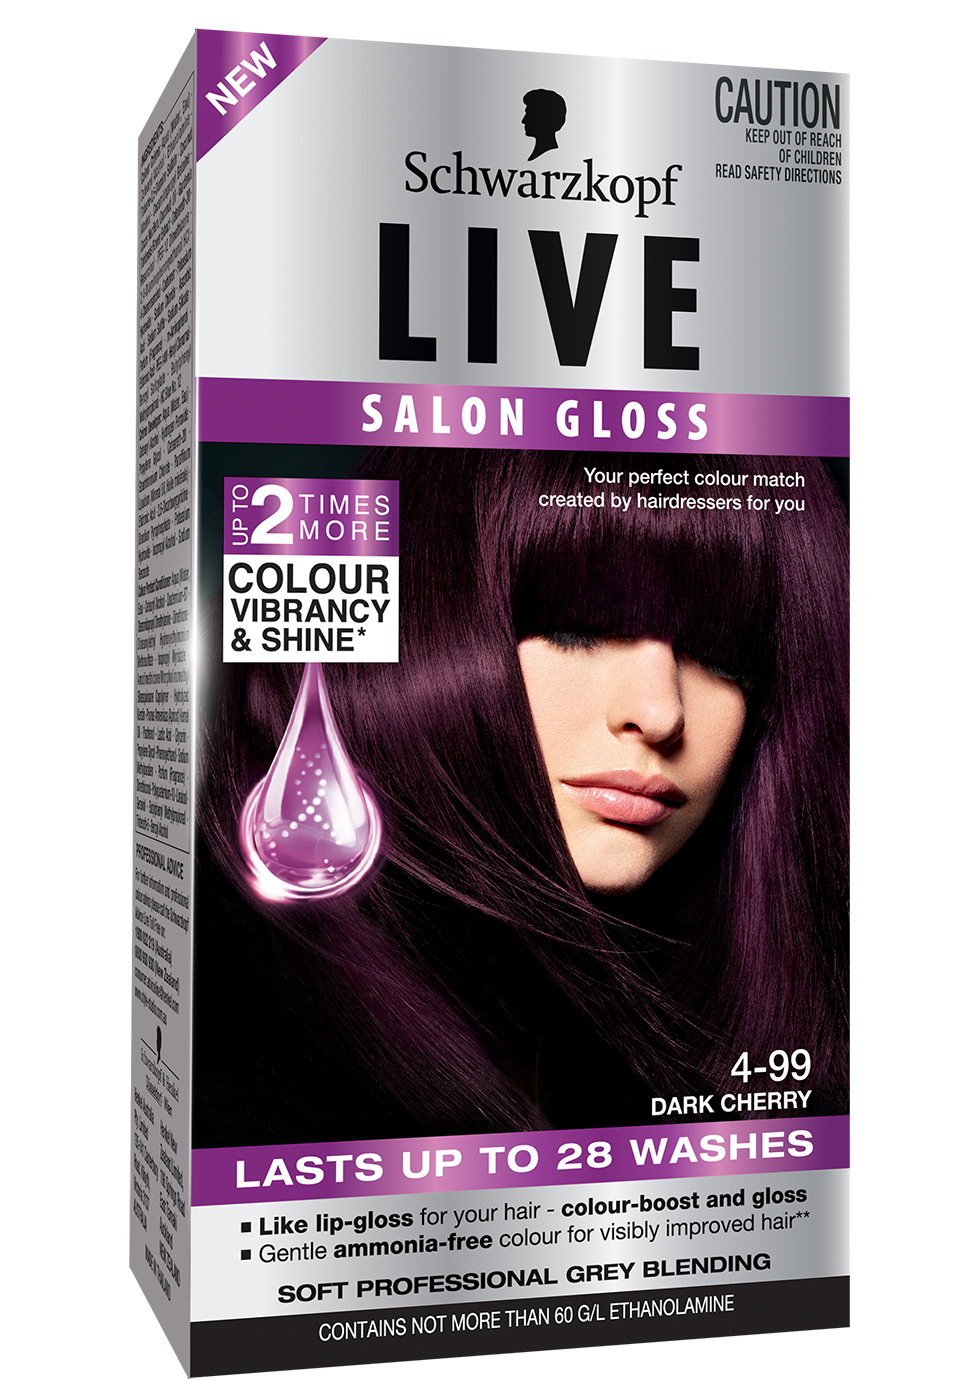 298LIVESalonGloss3DLF499DarkCherry